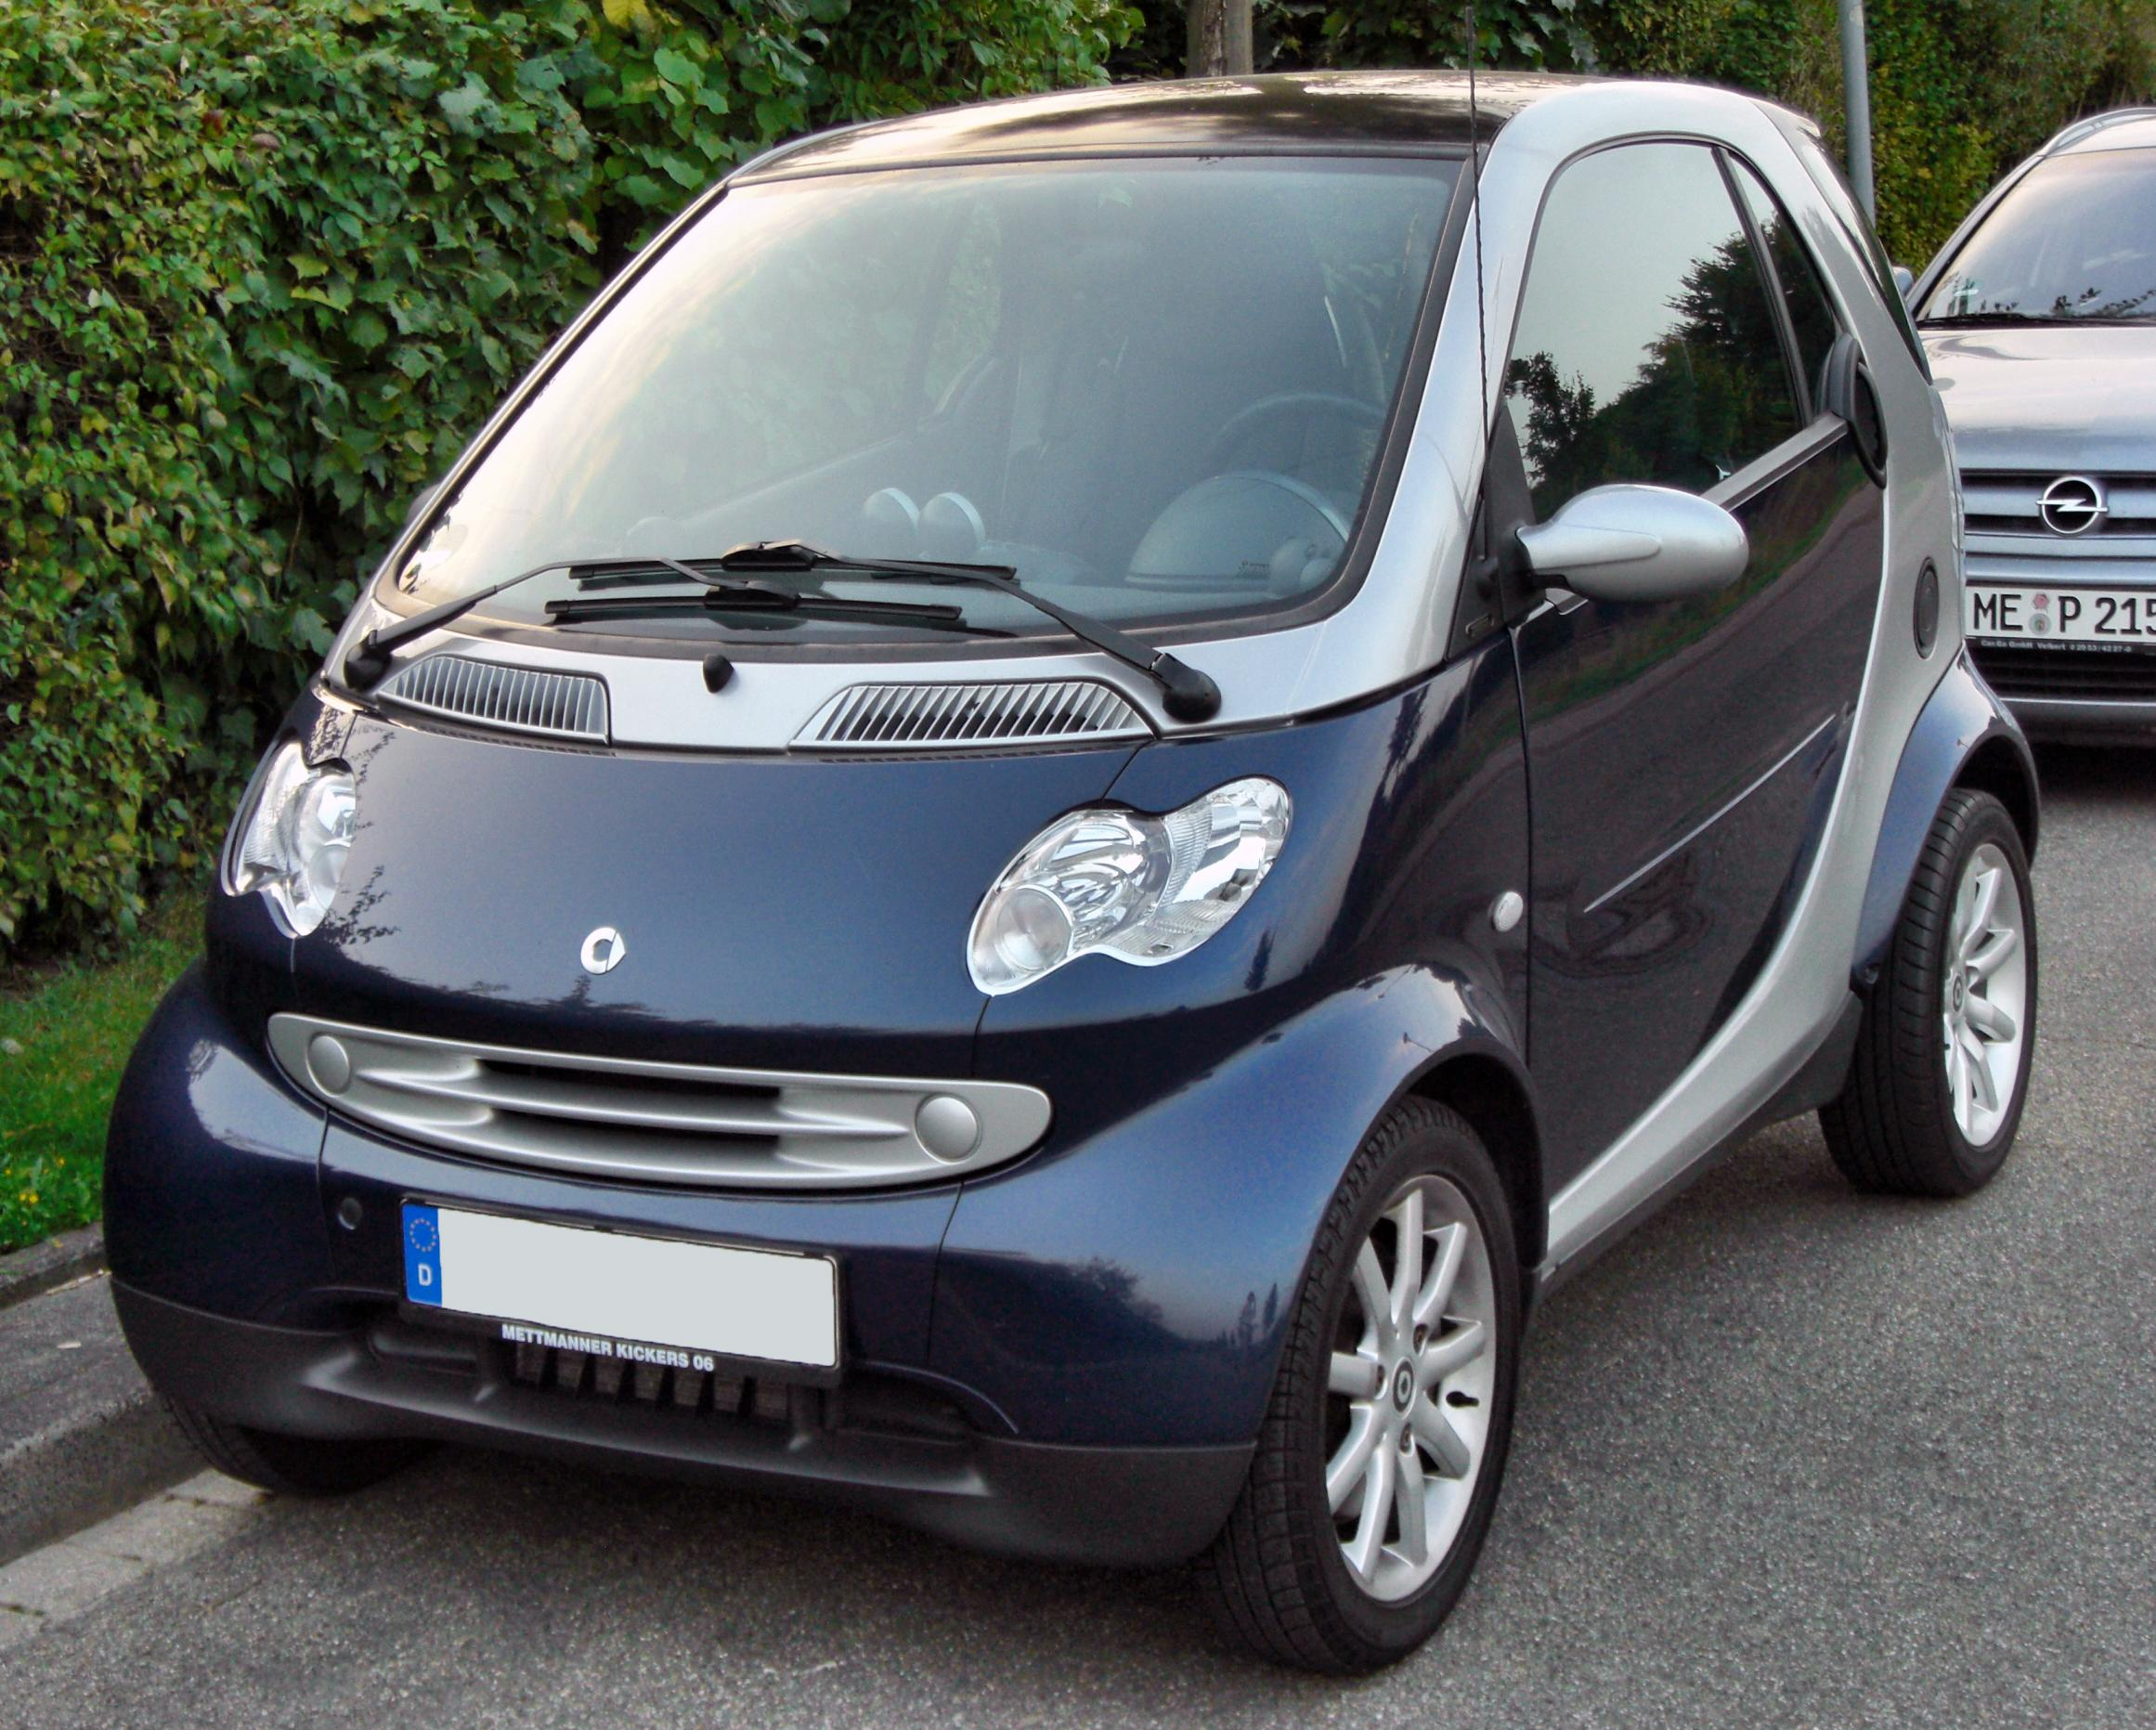 Electric Mercedes Smart Car For Two